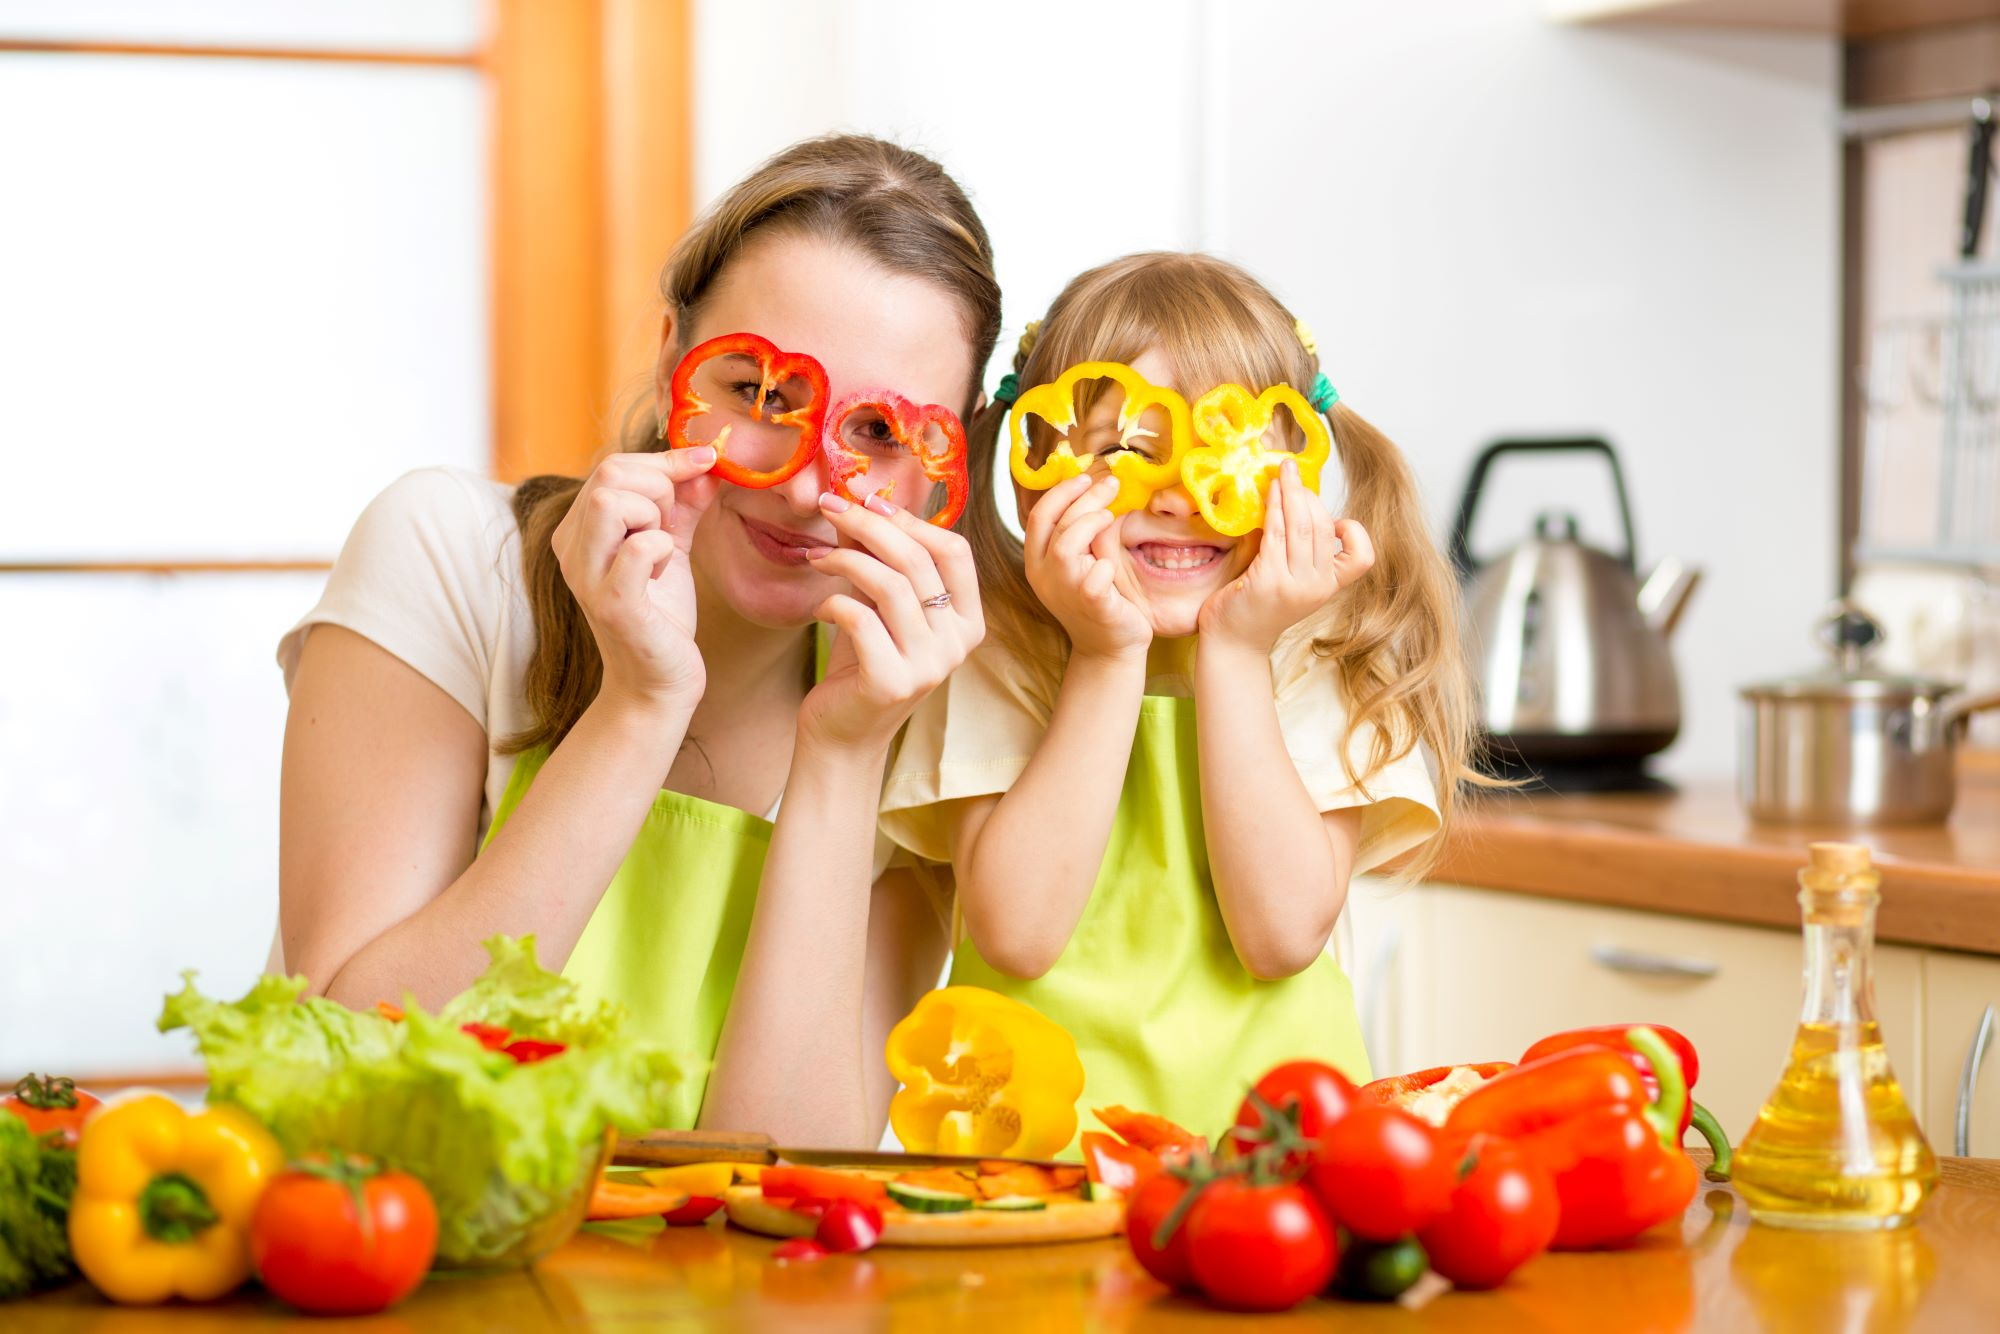 Mom and daughter with pepper slices over their eyes